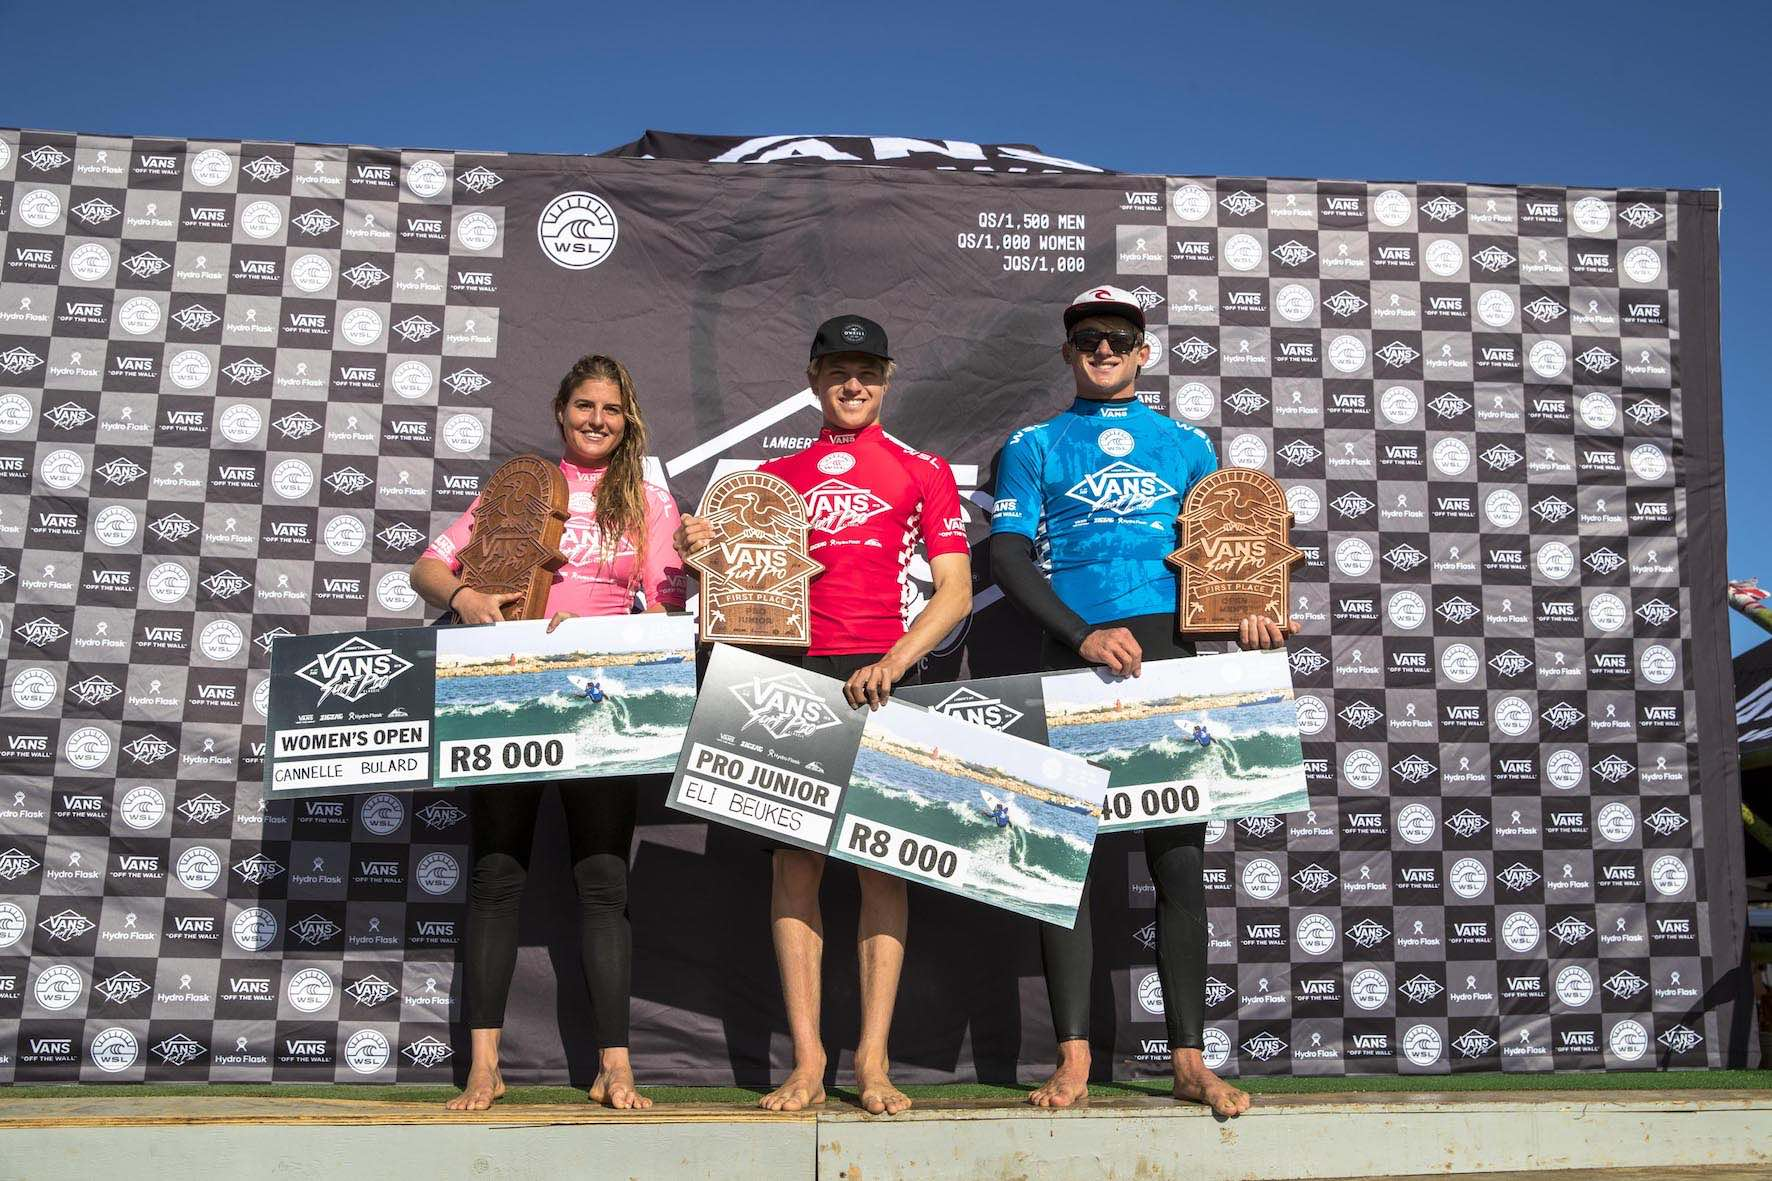 Podium from the 2018 Vans Surf Pro Classic